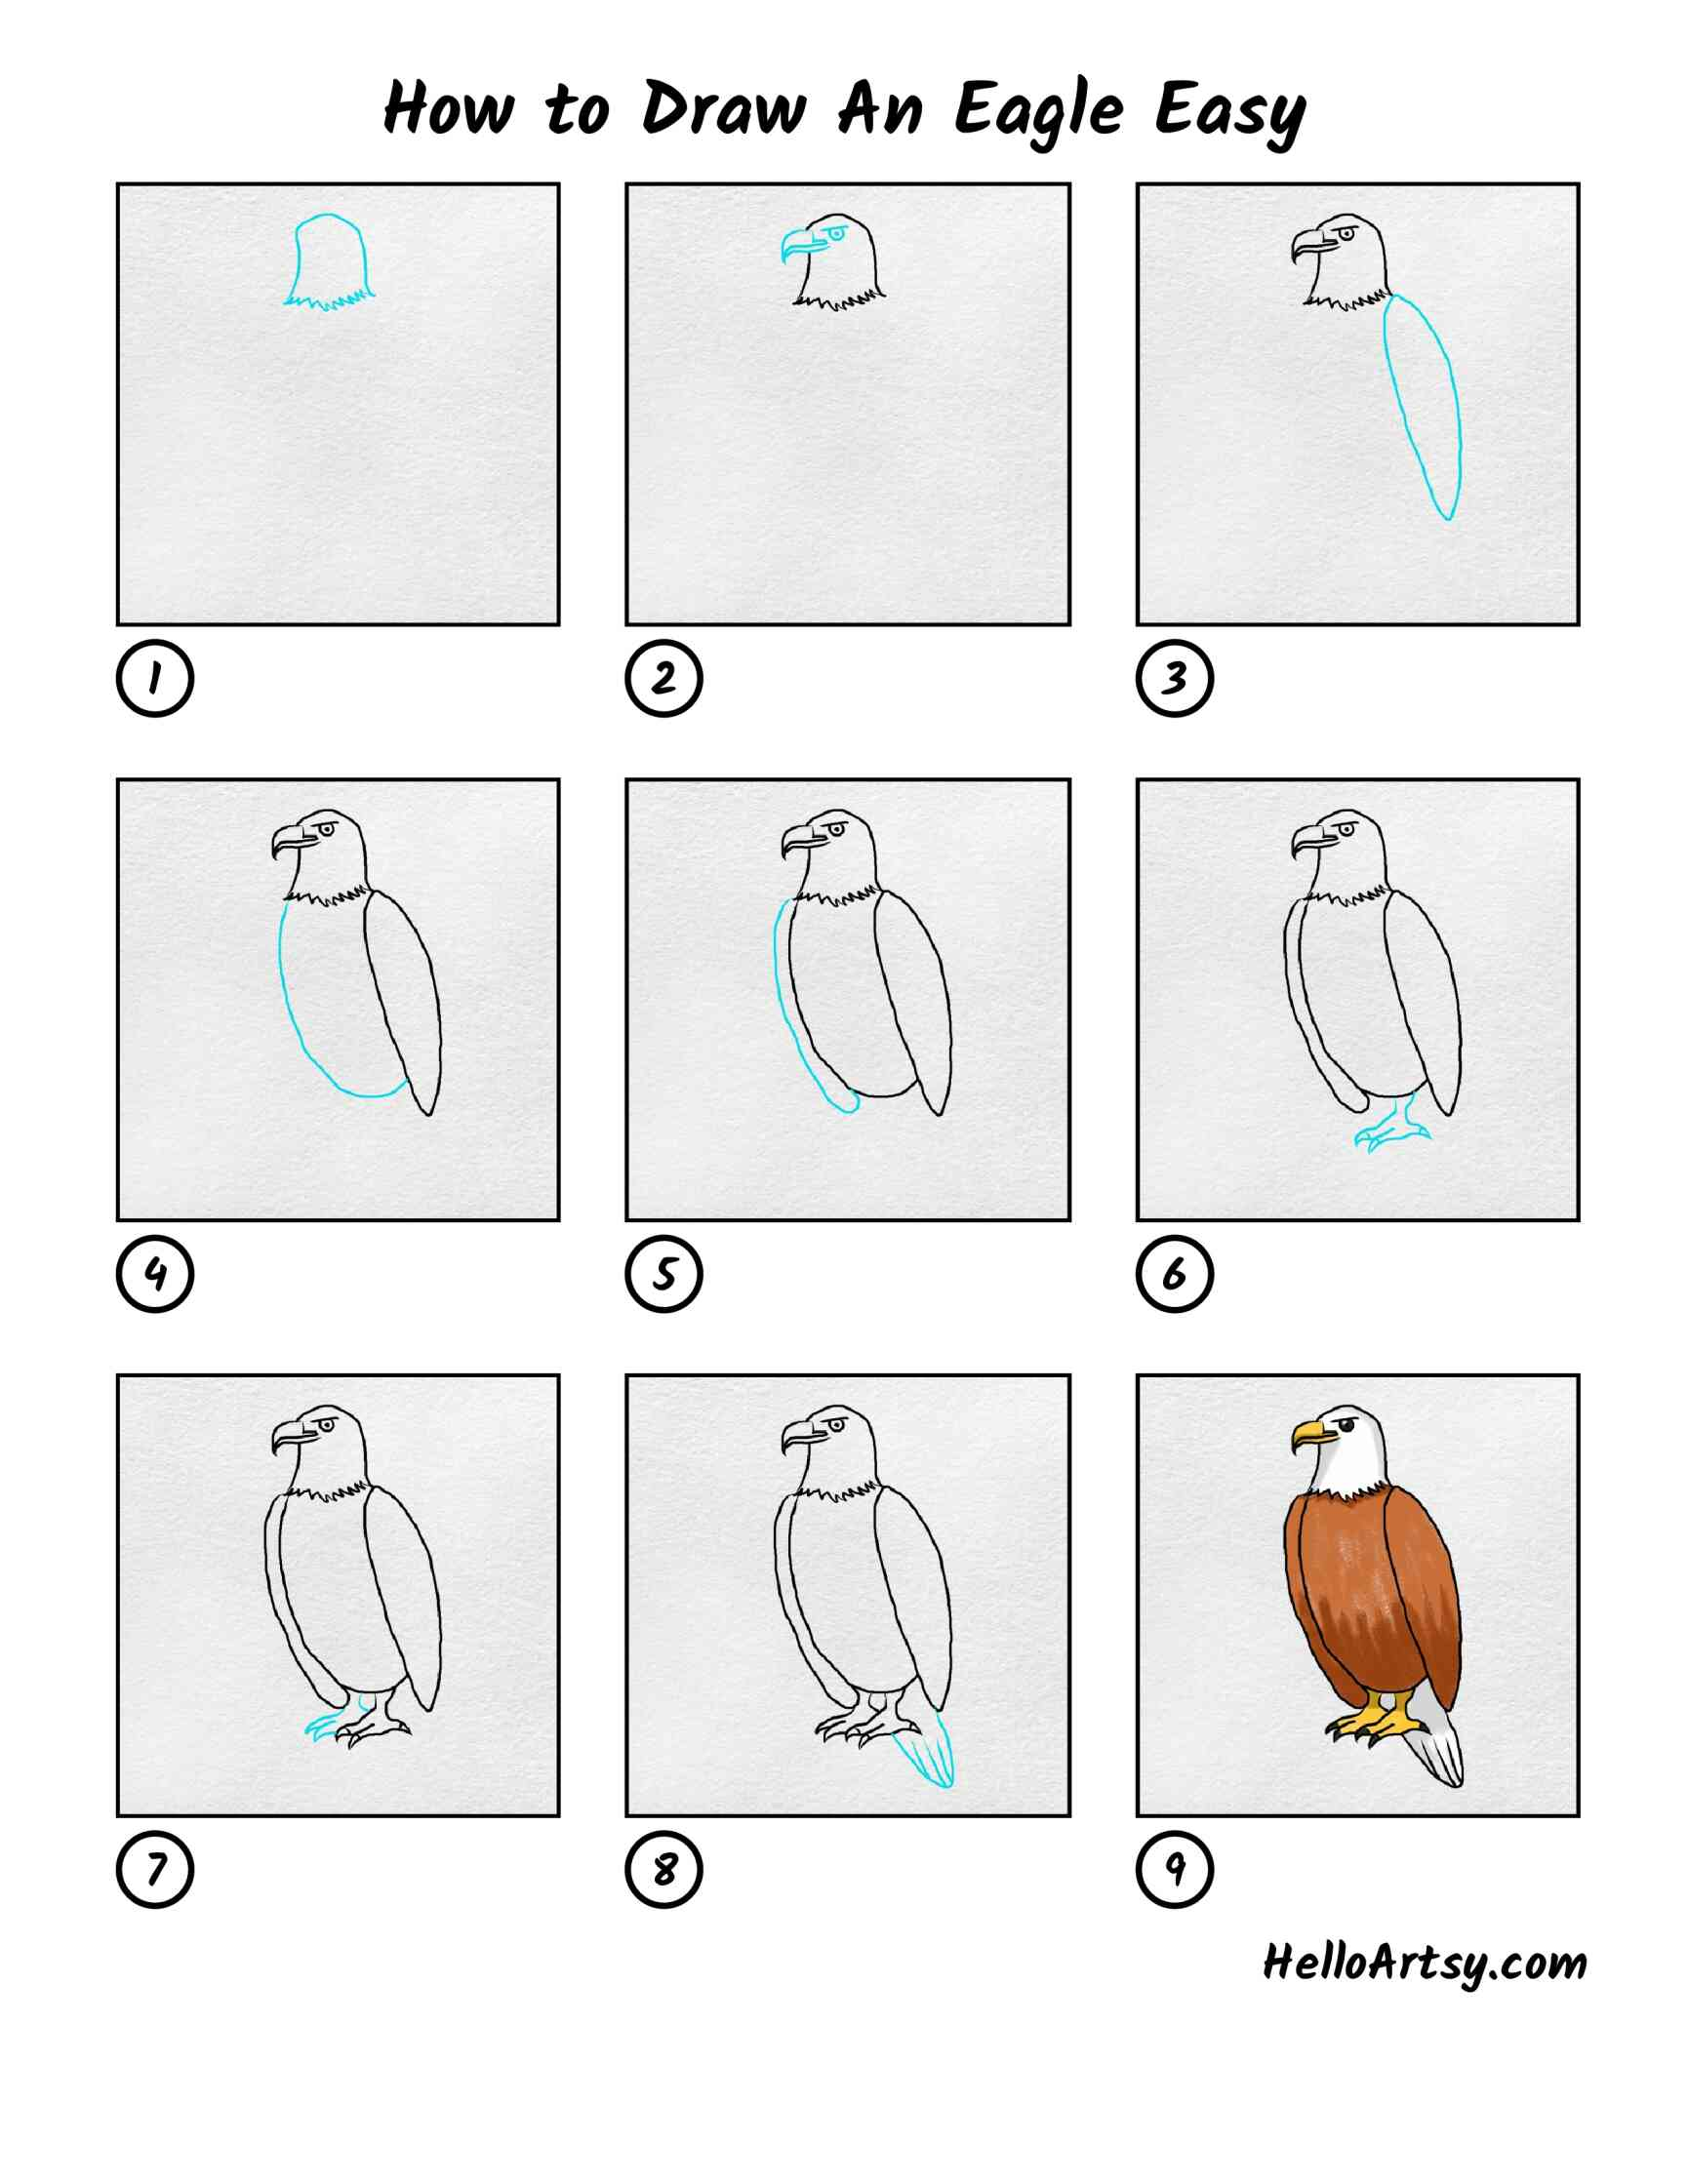 How To Draw An Eagle Easy: All Steps